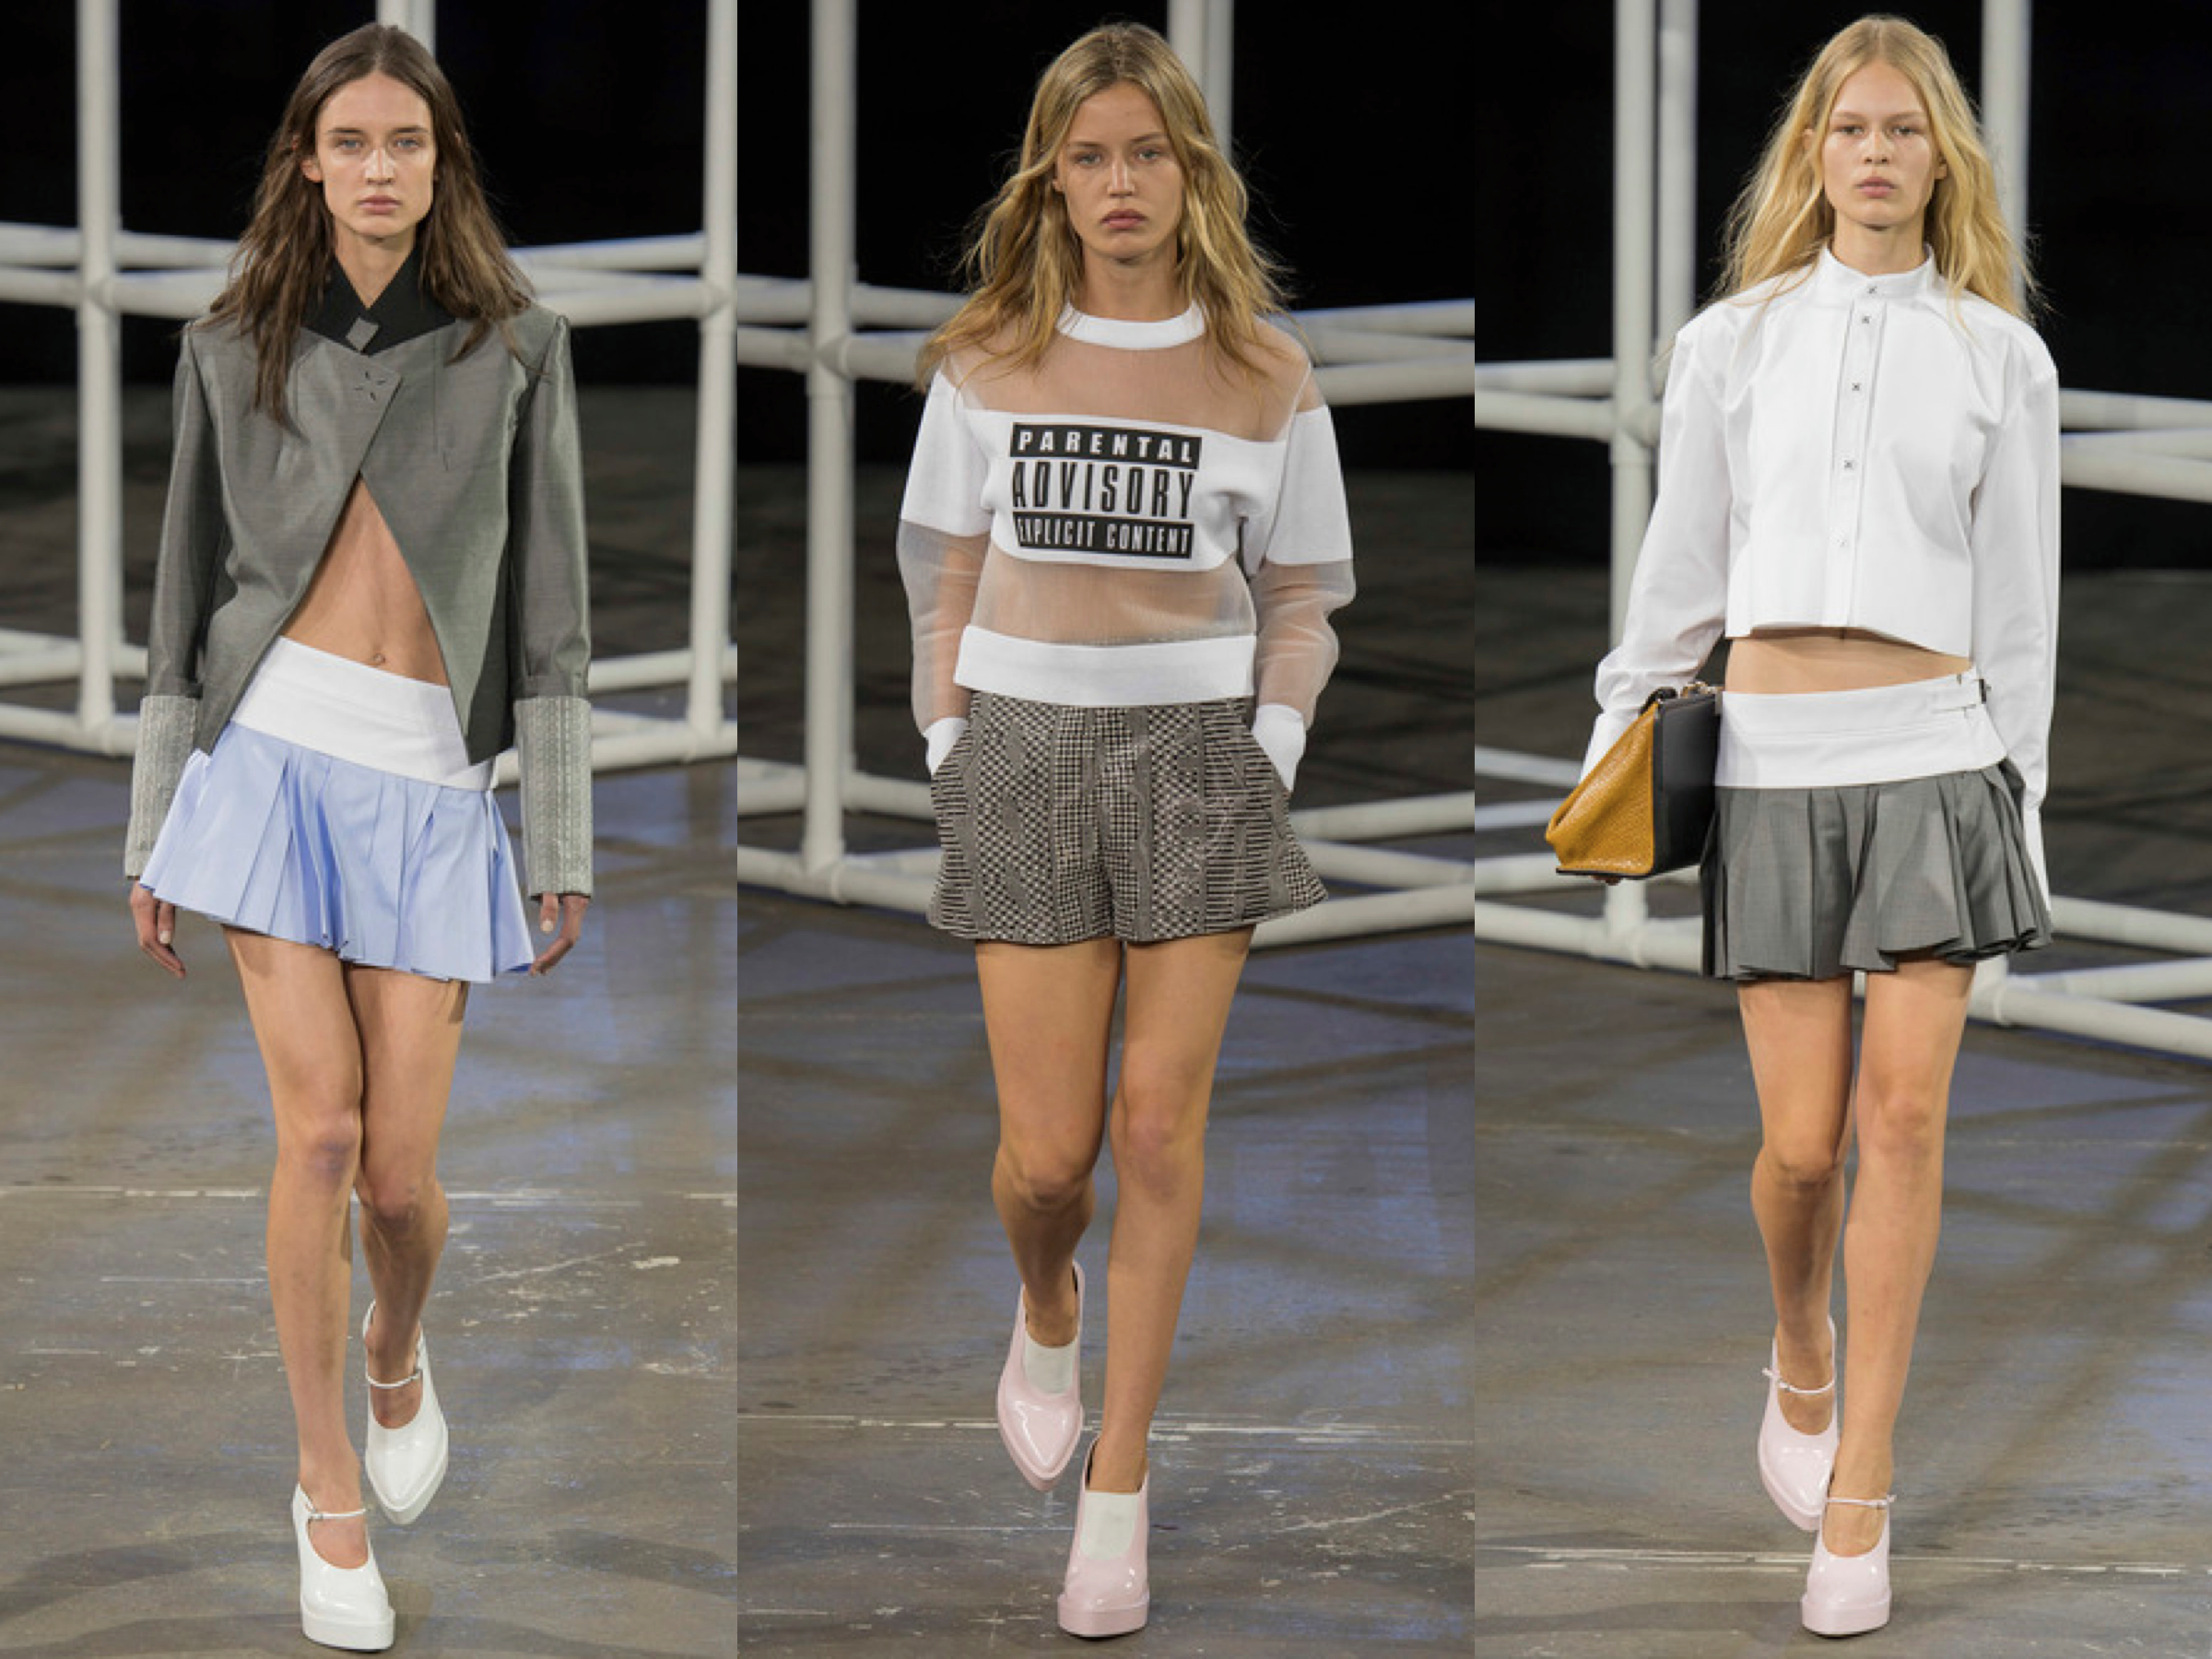 Alexander Wang spring 2014 collage 2